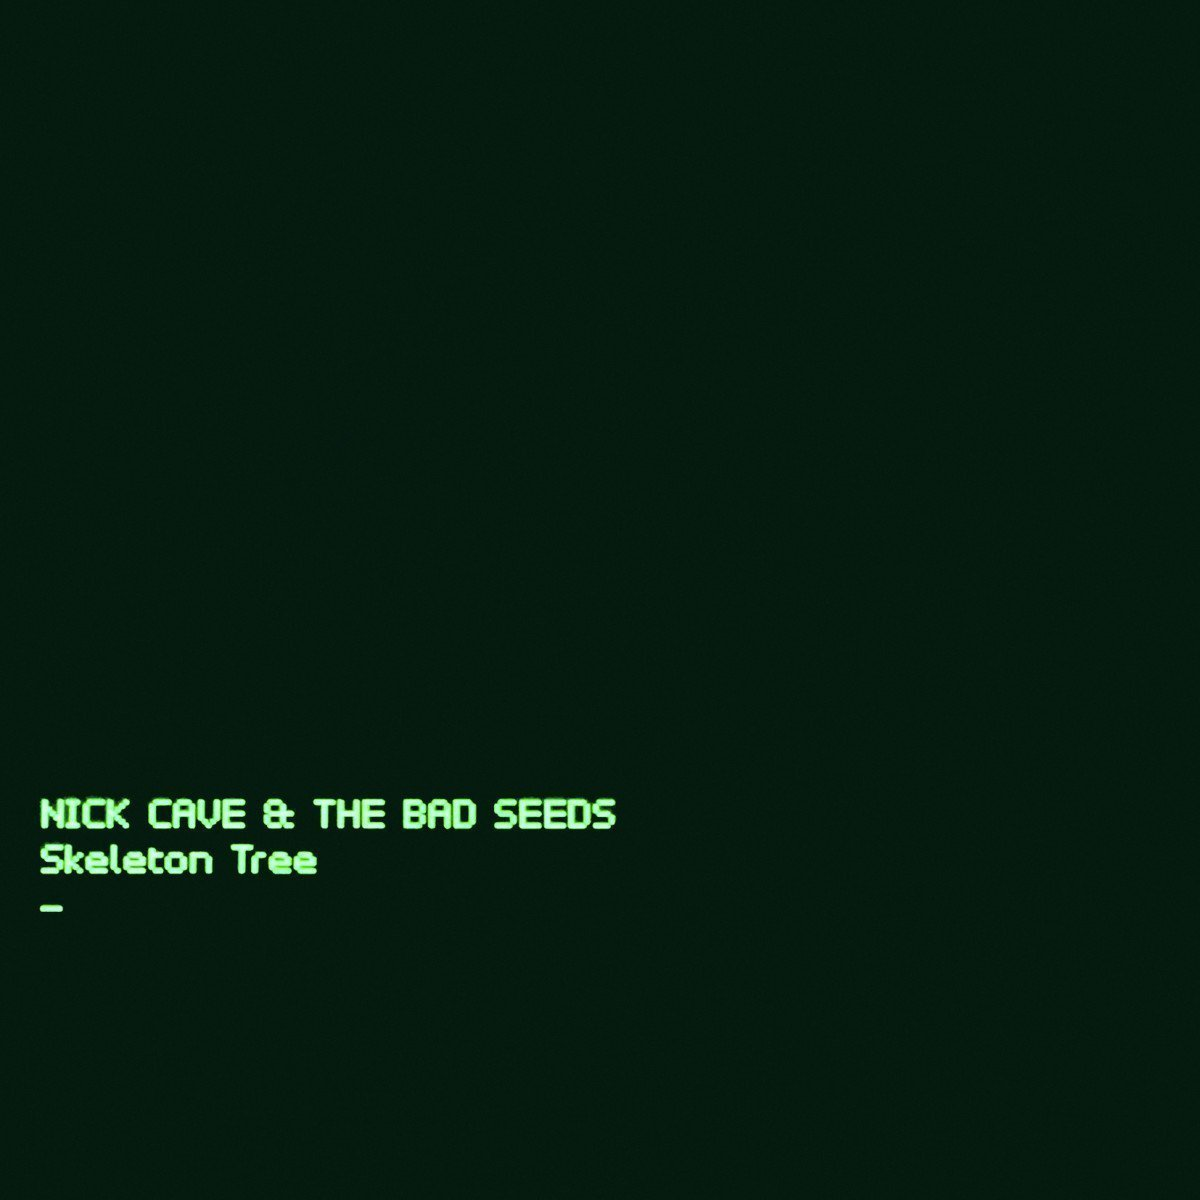 Nick Cave & The Bad Seeds Sound Superb on 'Skeleton Tree'